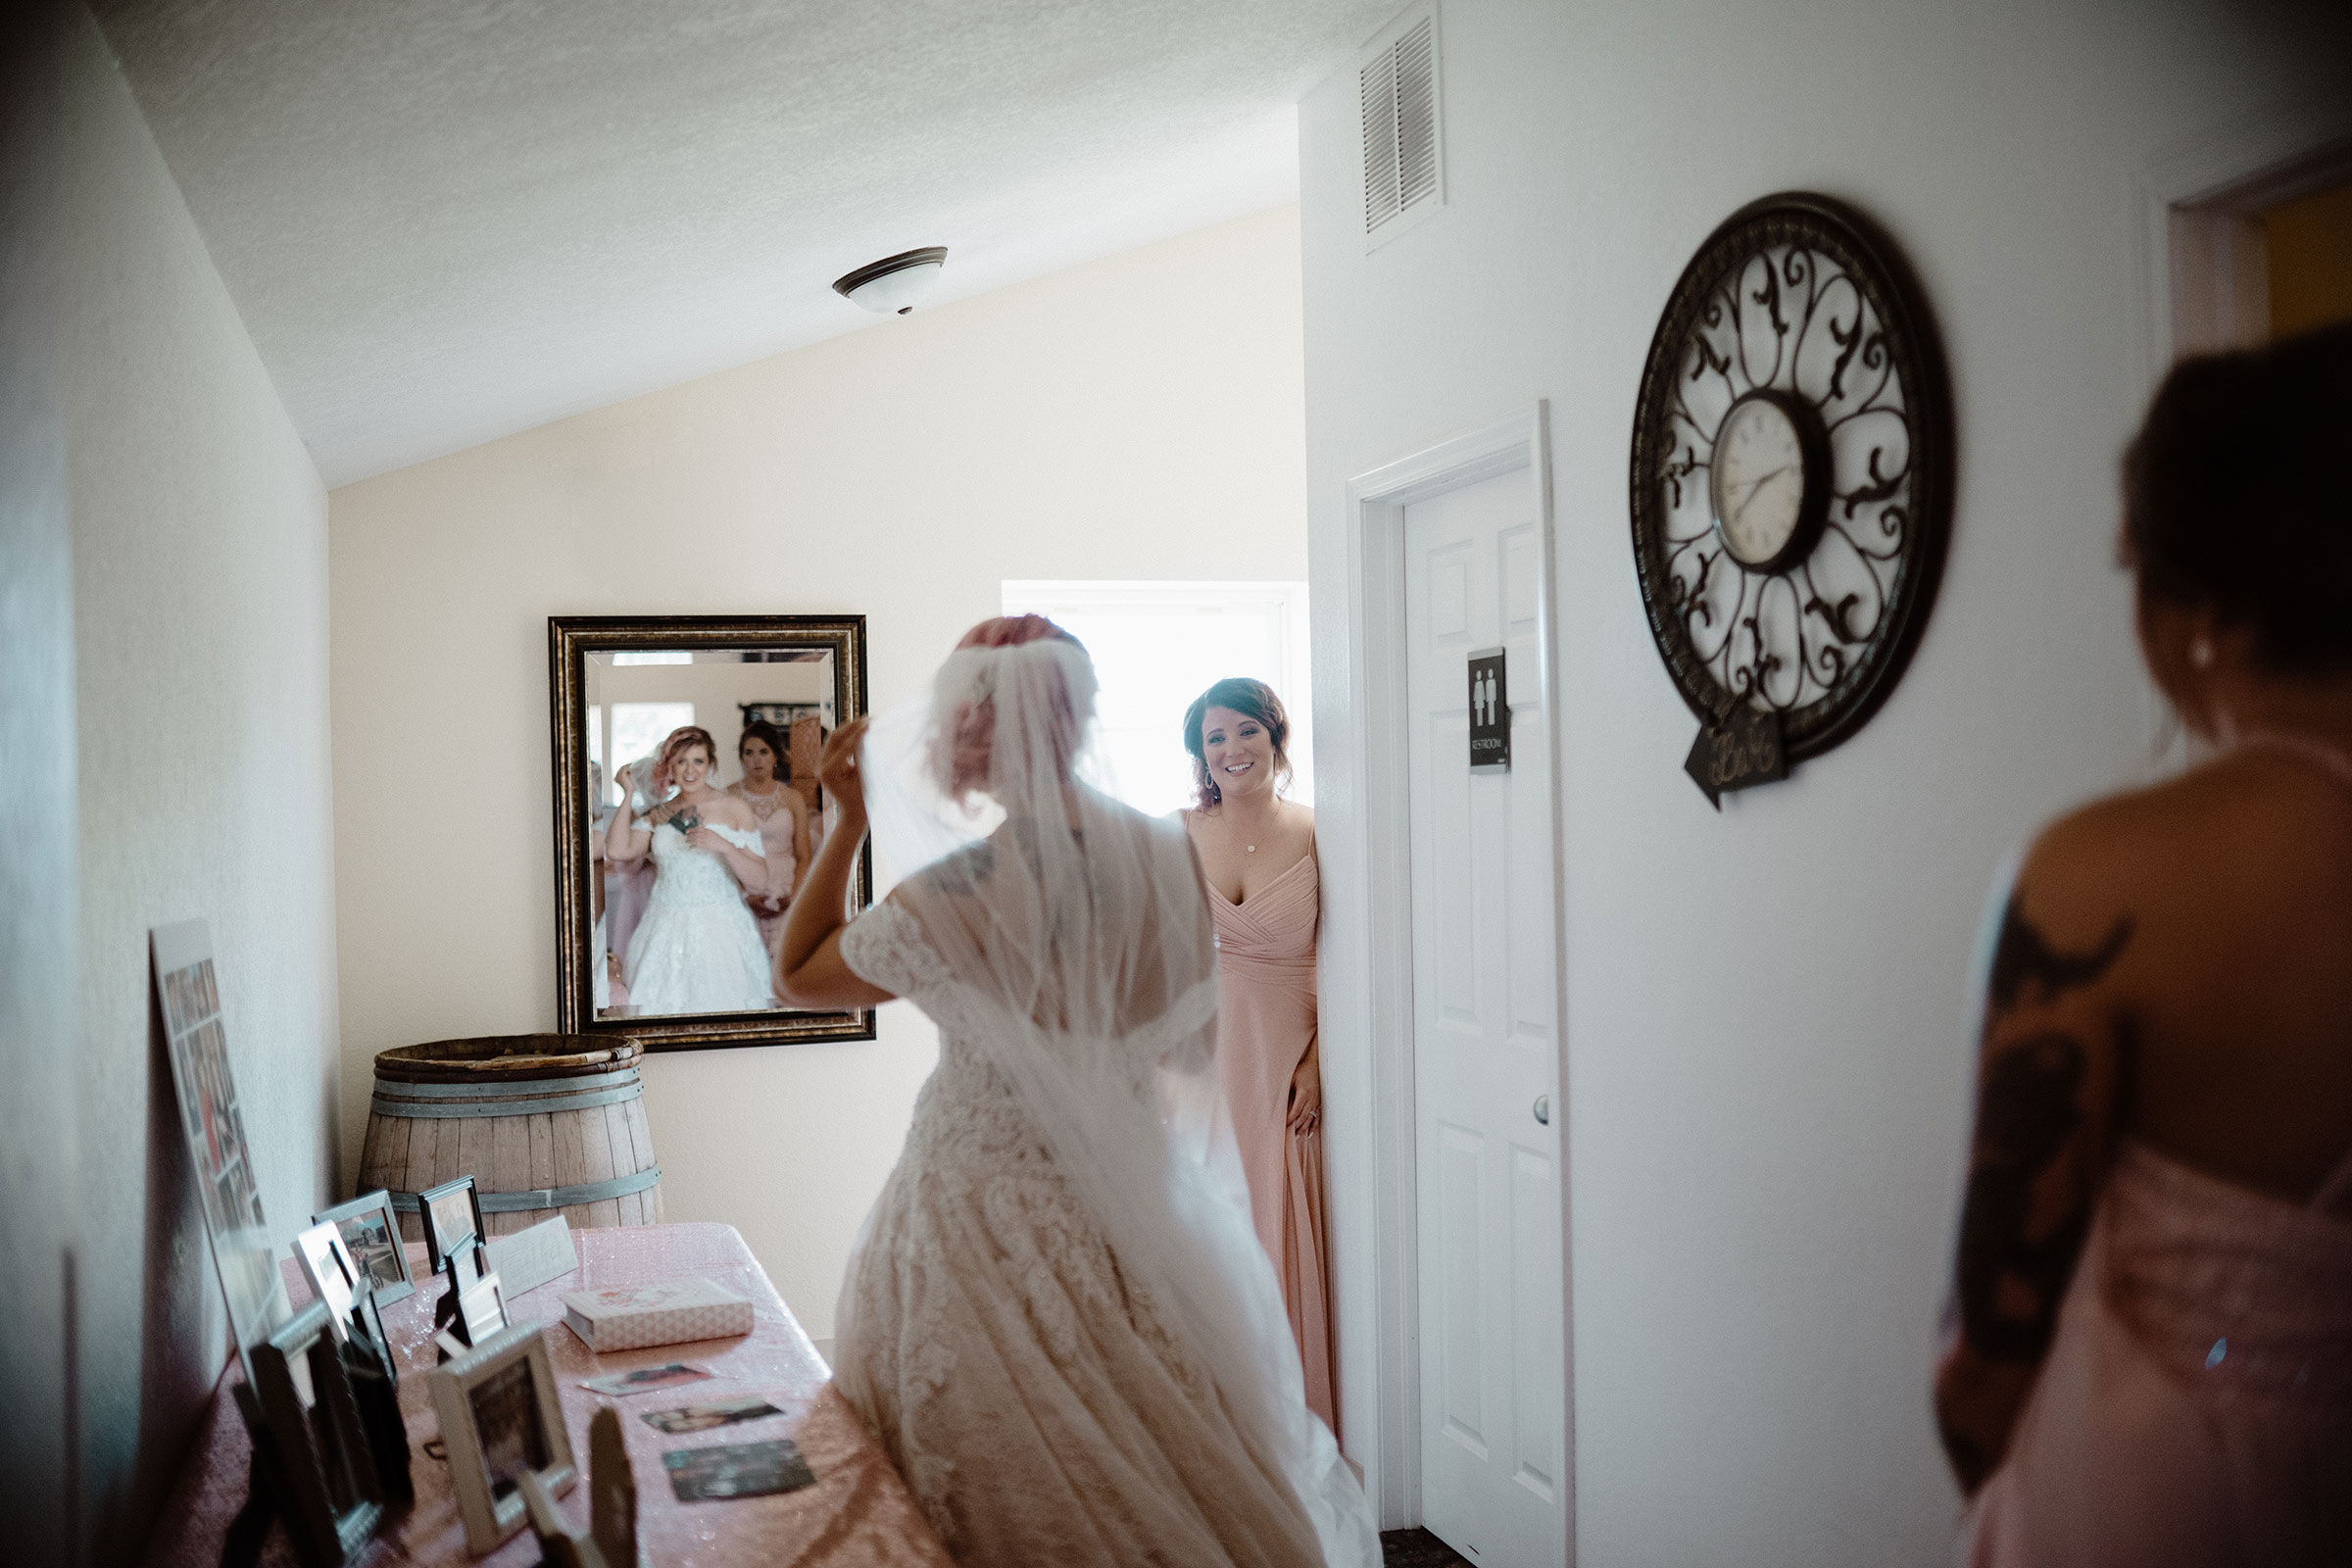 bride-looking-in-mirror-while-sister-watches-wedding-summerset-winery-indianola-iowa-raelyn-ramey-photography.jpg